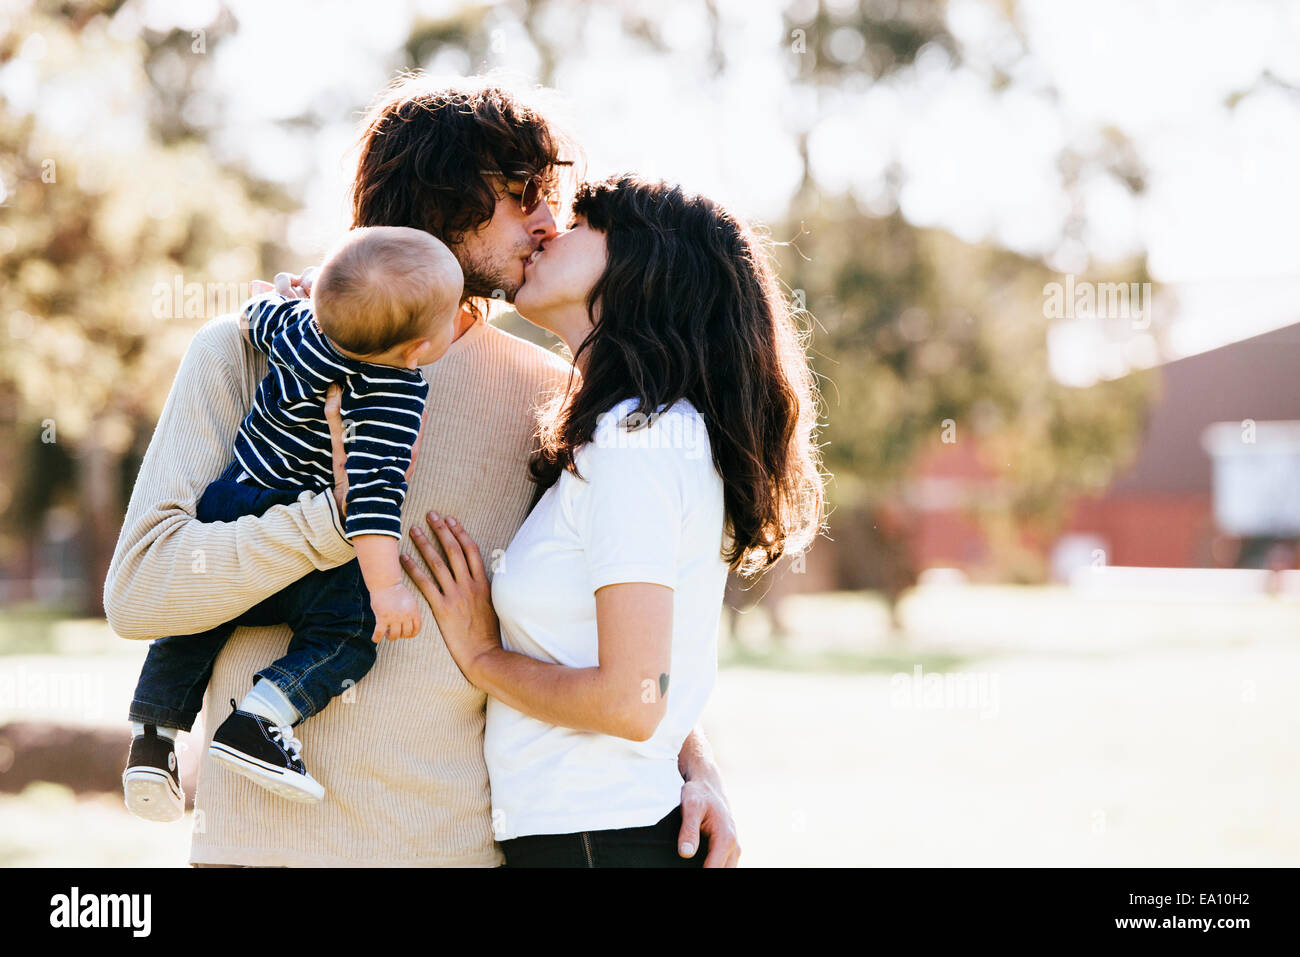 Couple with baby in park - Stock Image